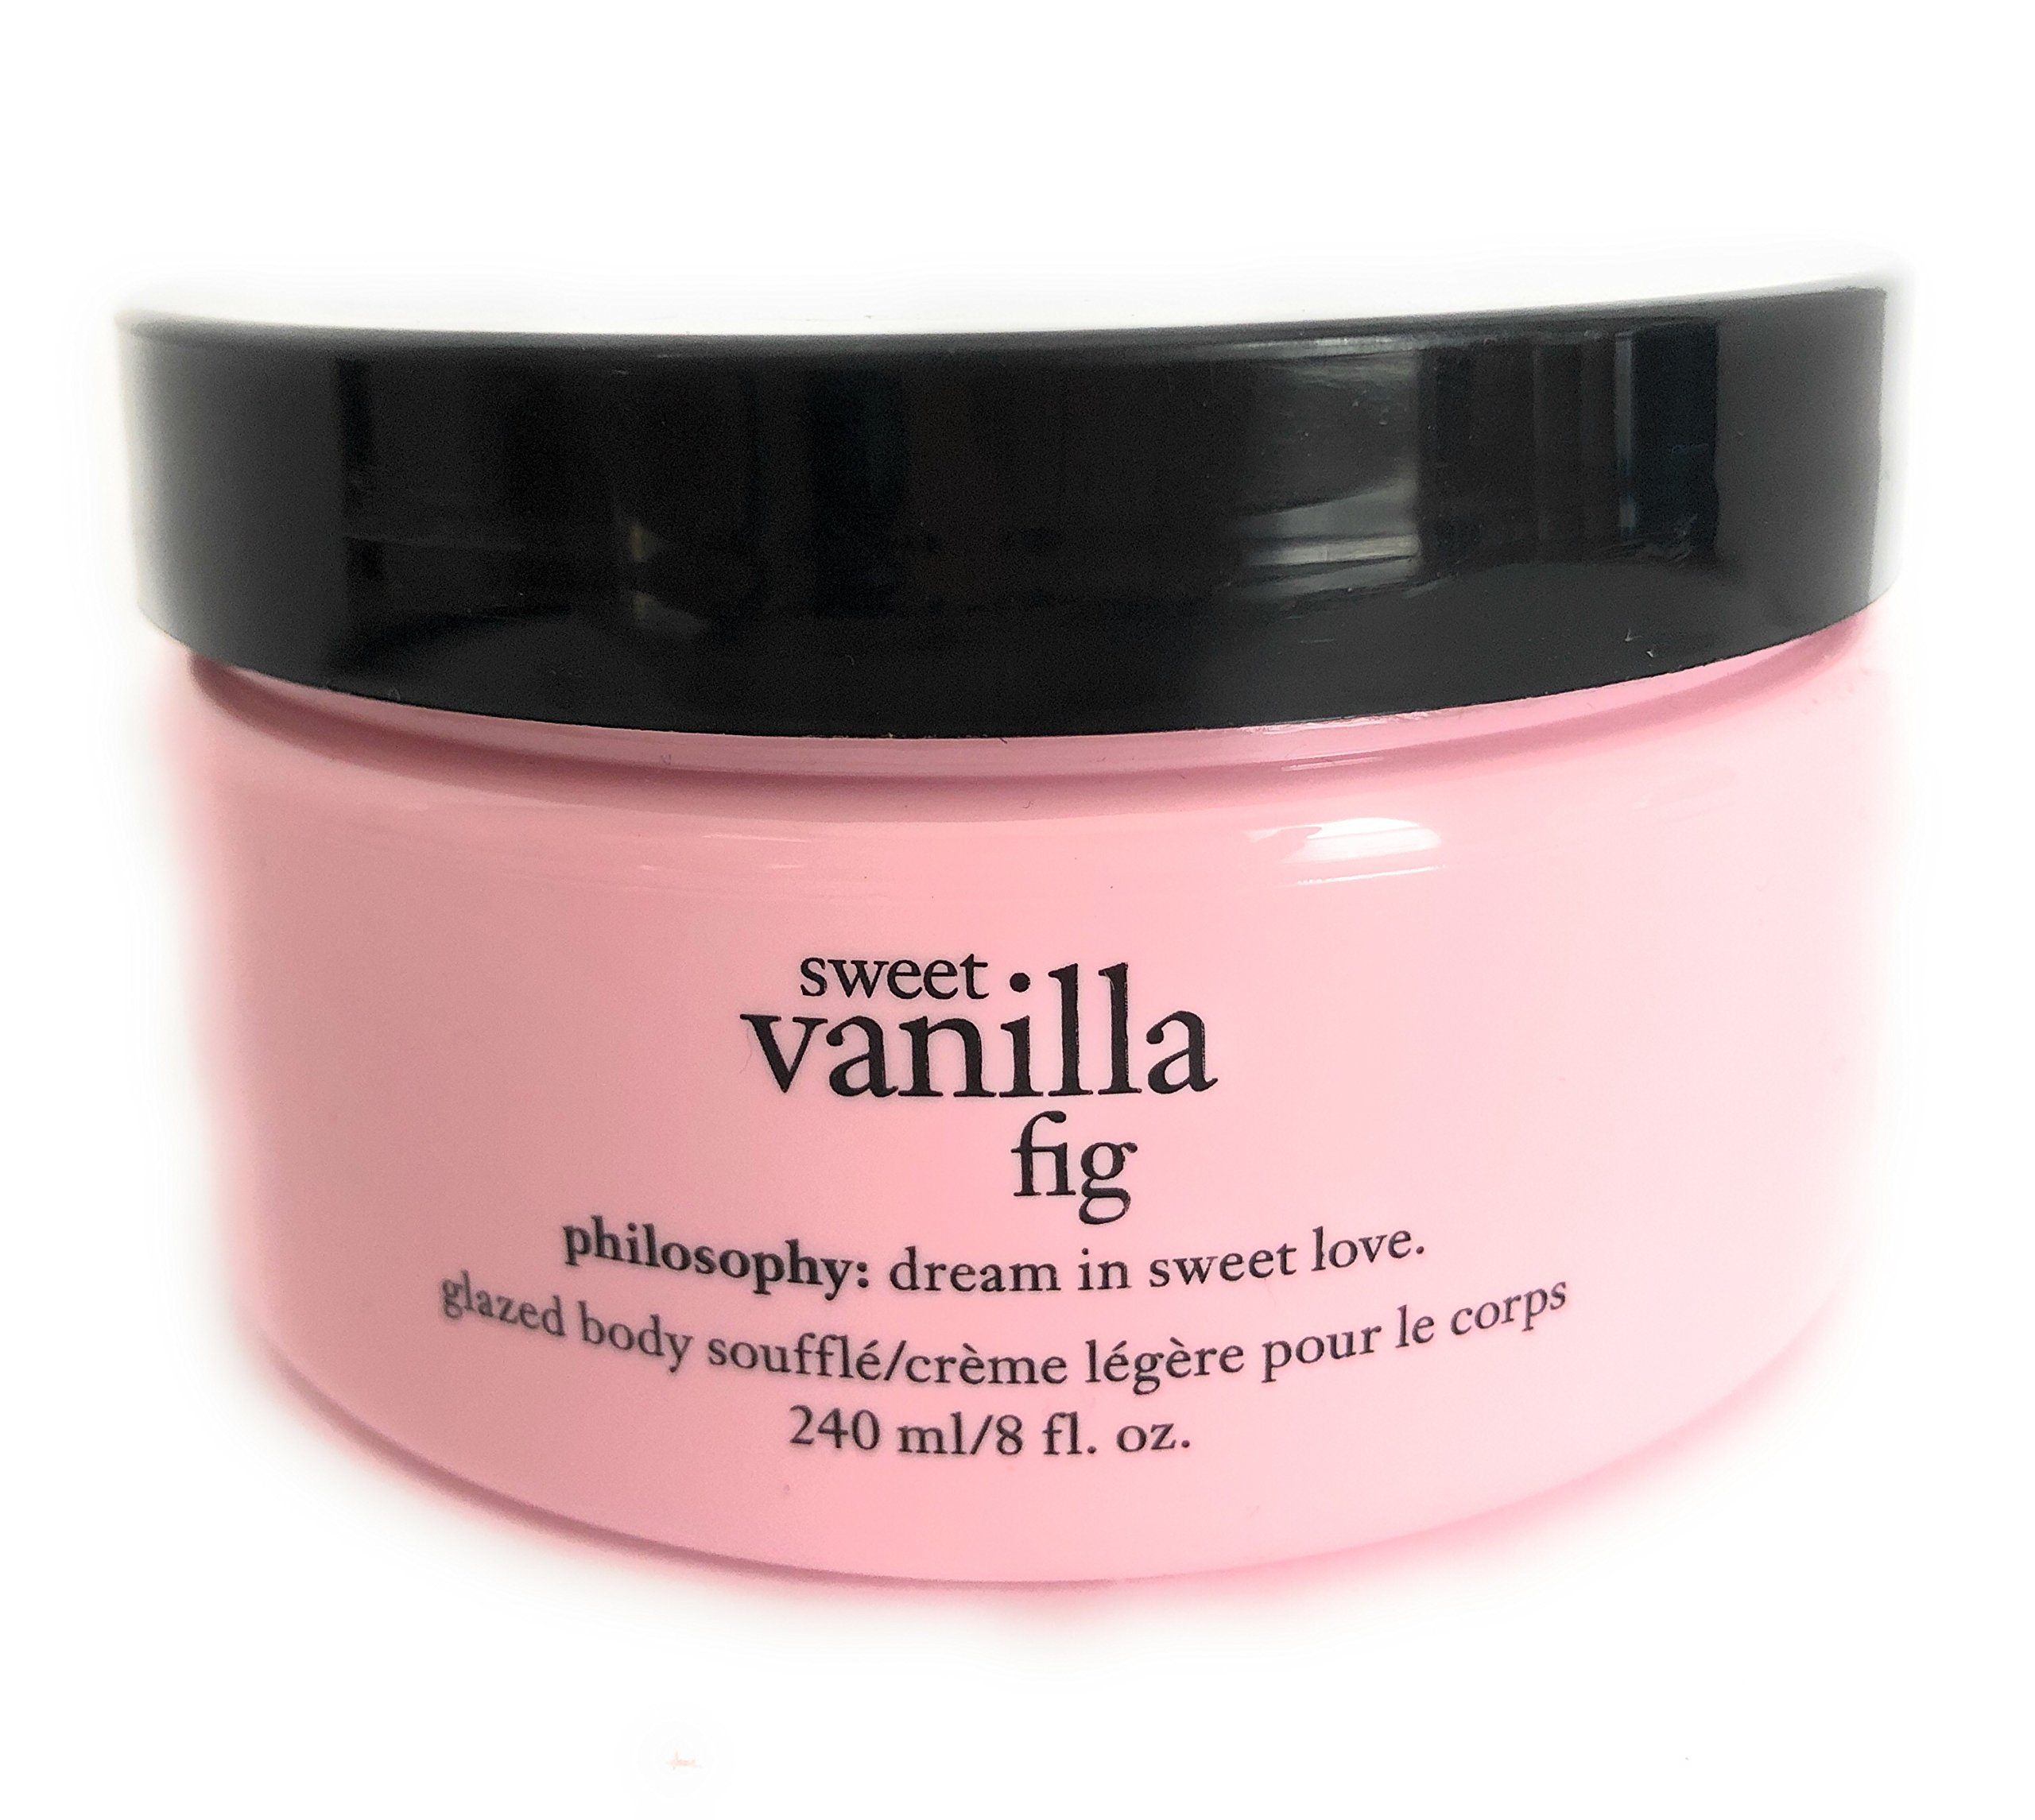 Philosophy Sweet Vanilla Fig Glazed Body Soufflé 8 oz jar